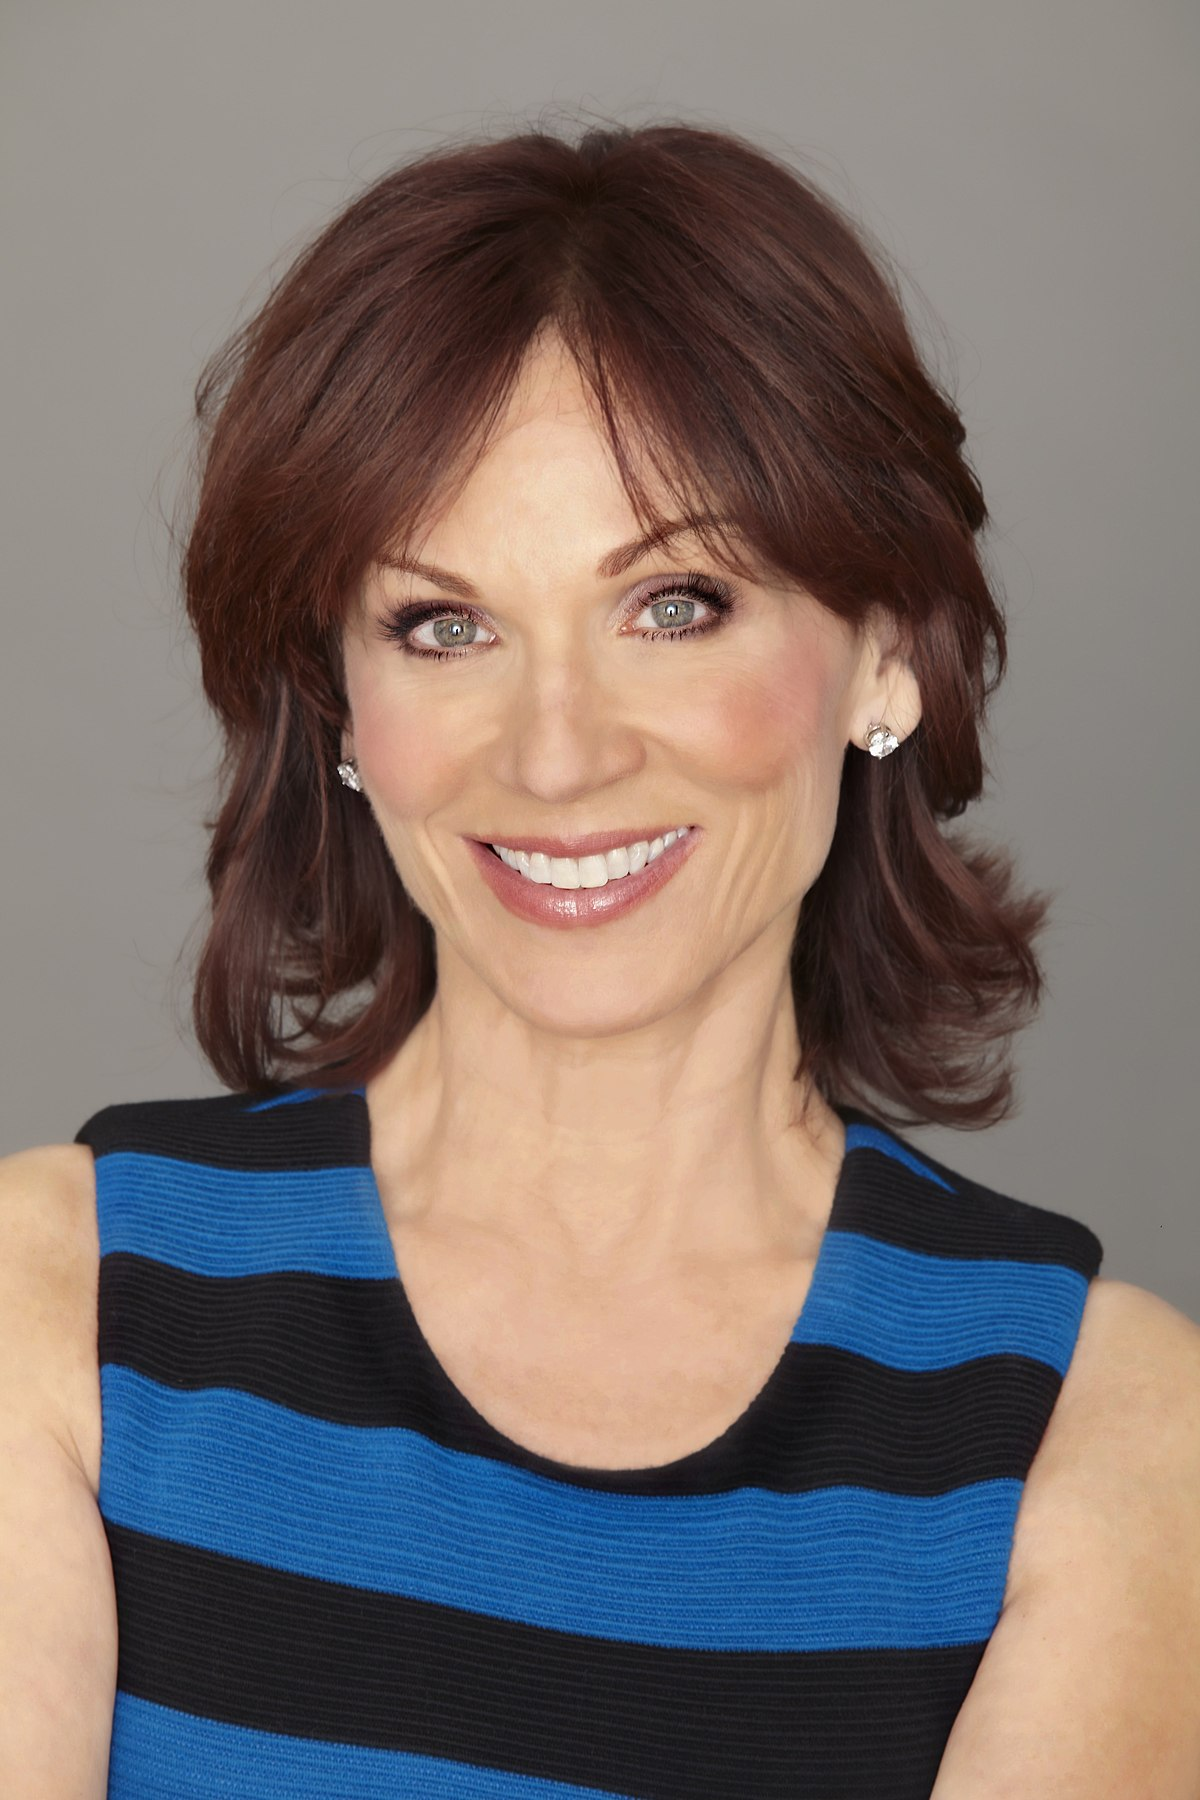 The 68-year old daughter of father Joseph Henner and mother Loretta Callis Marilu Henner in 2020 photo. Marilu Henner earned a  million dollar salary - leaving the net worth at 8 million in 2020